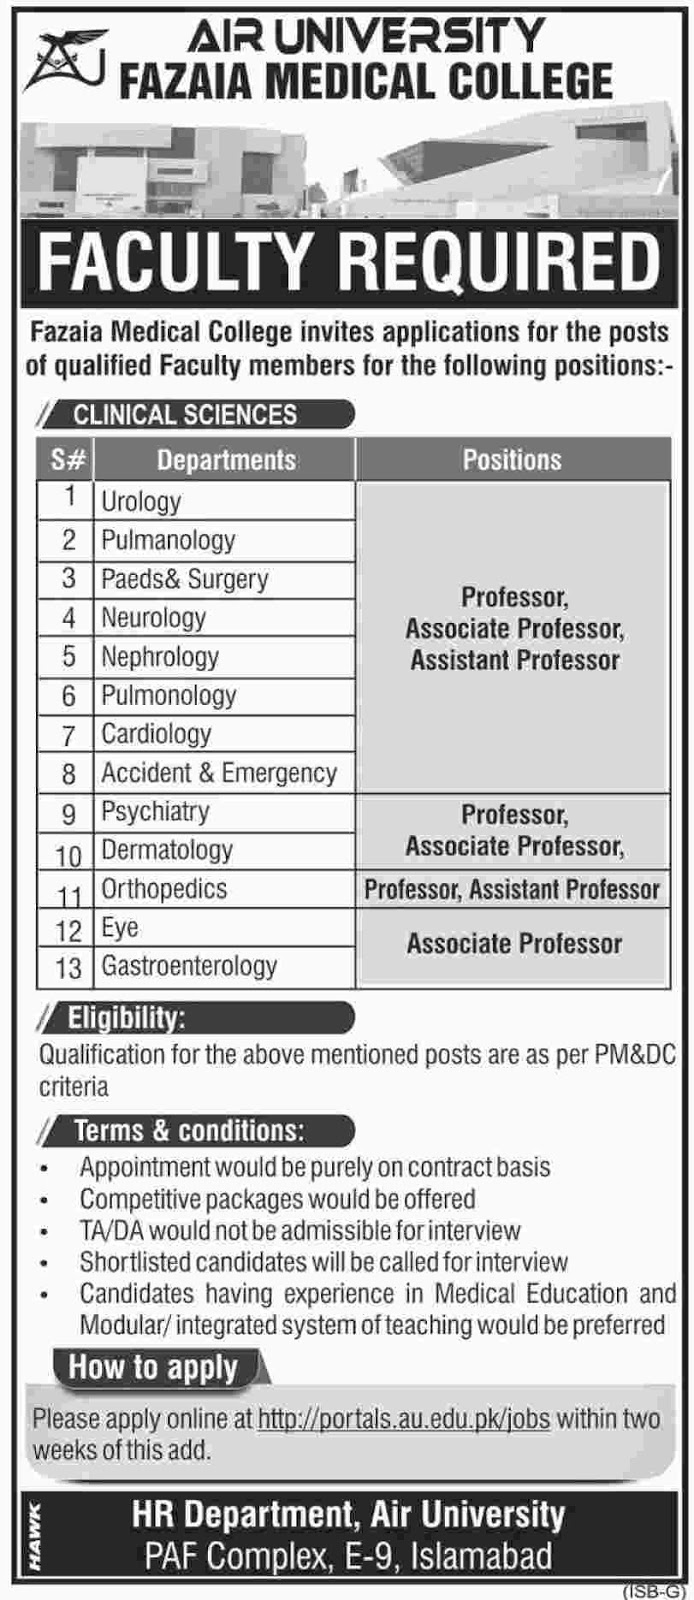 ➨ #Jobs - #Career_Opportunities - Jobs at Air University – Fazaia Medical College  – for application visit the link